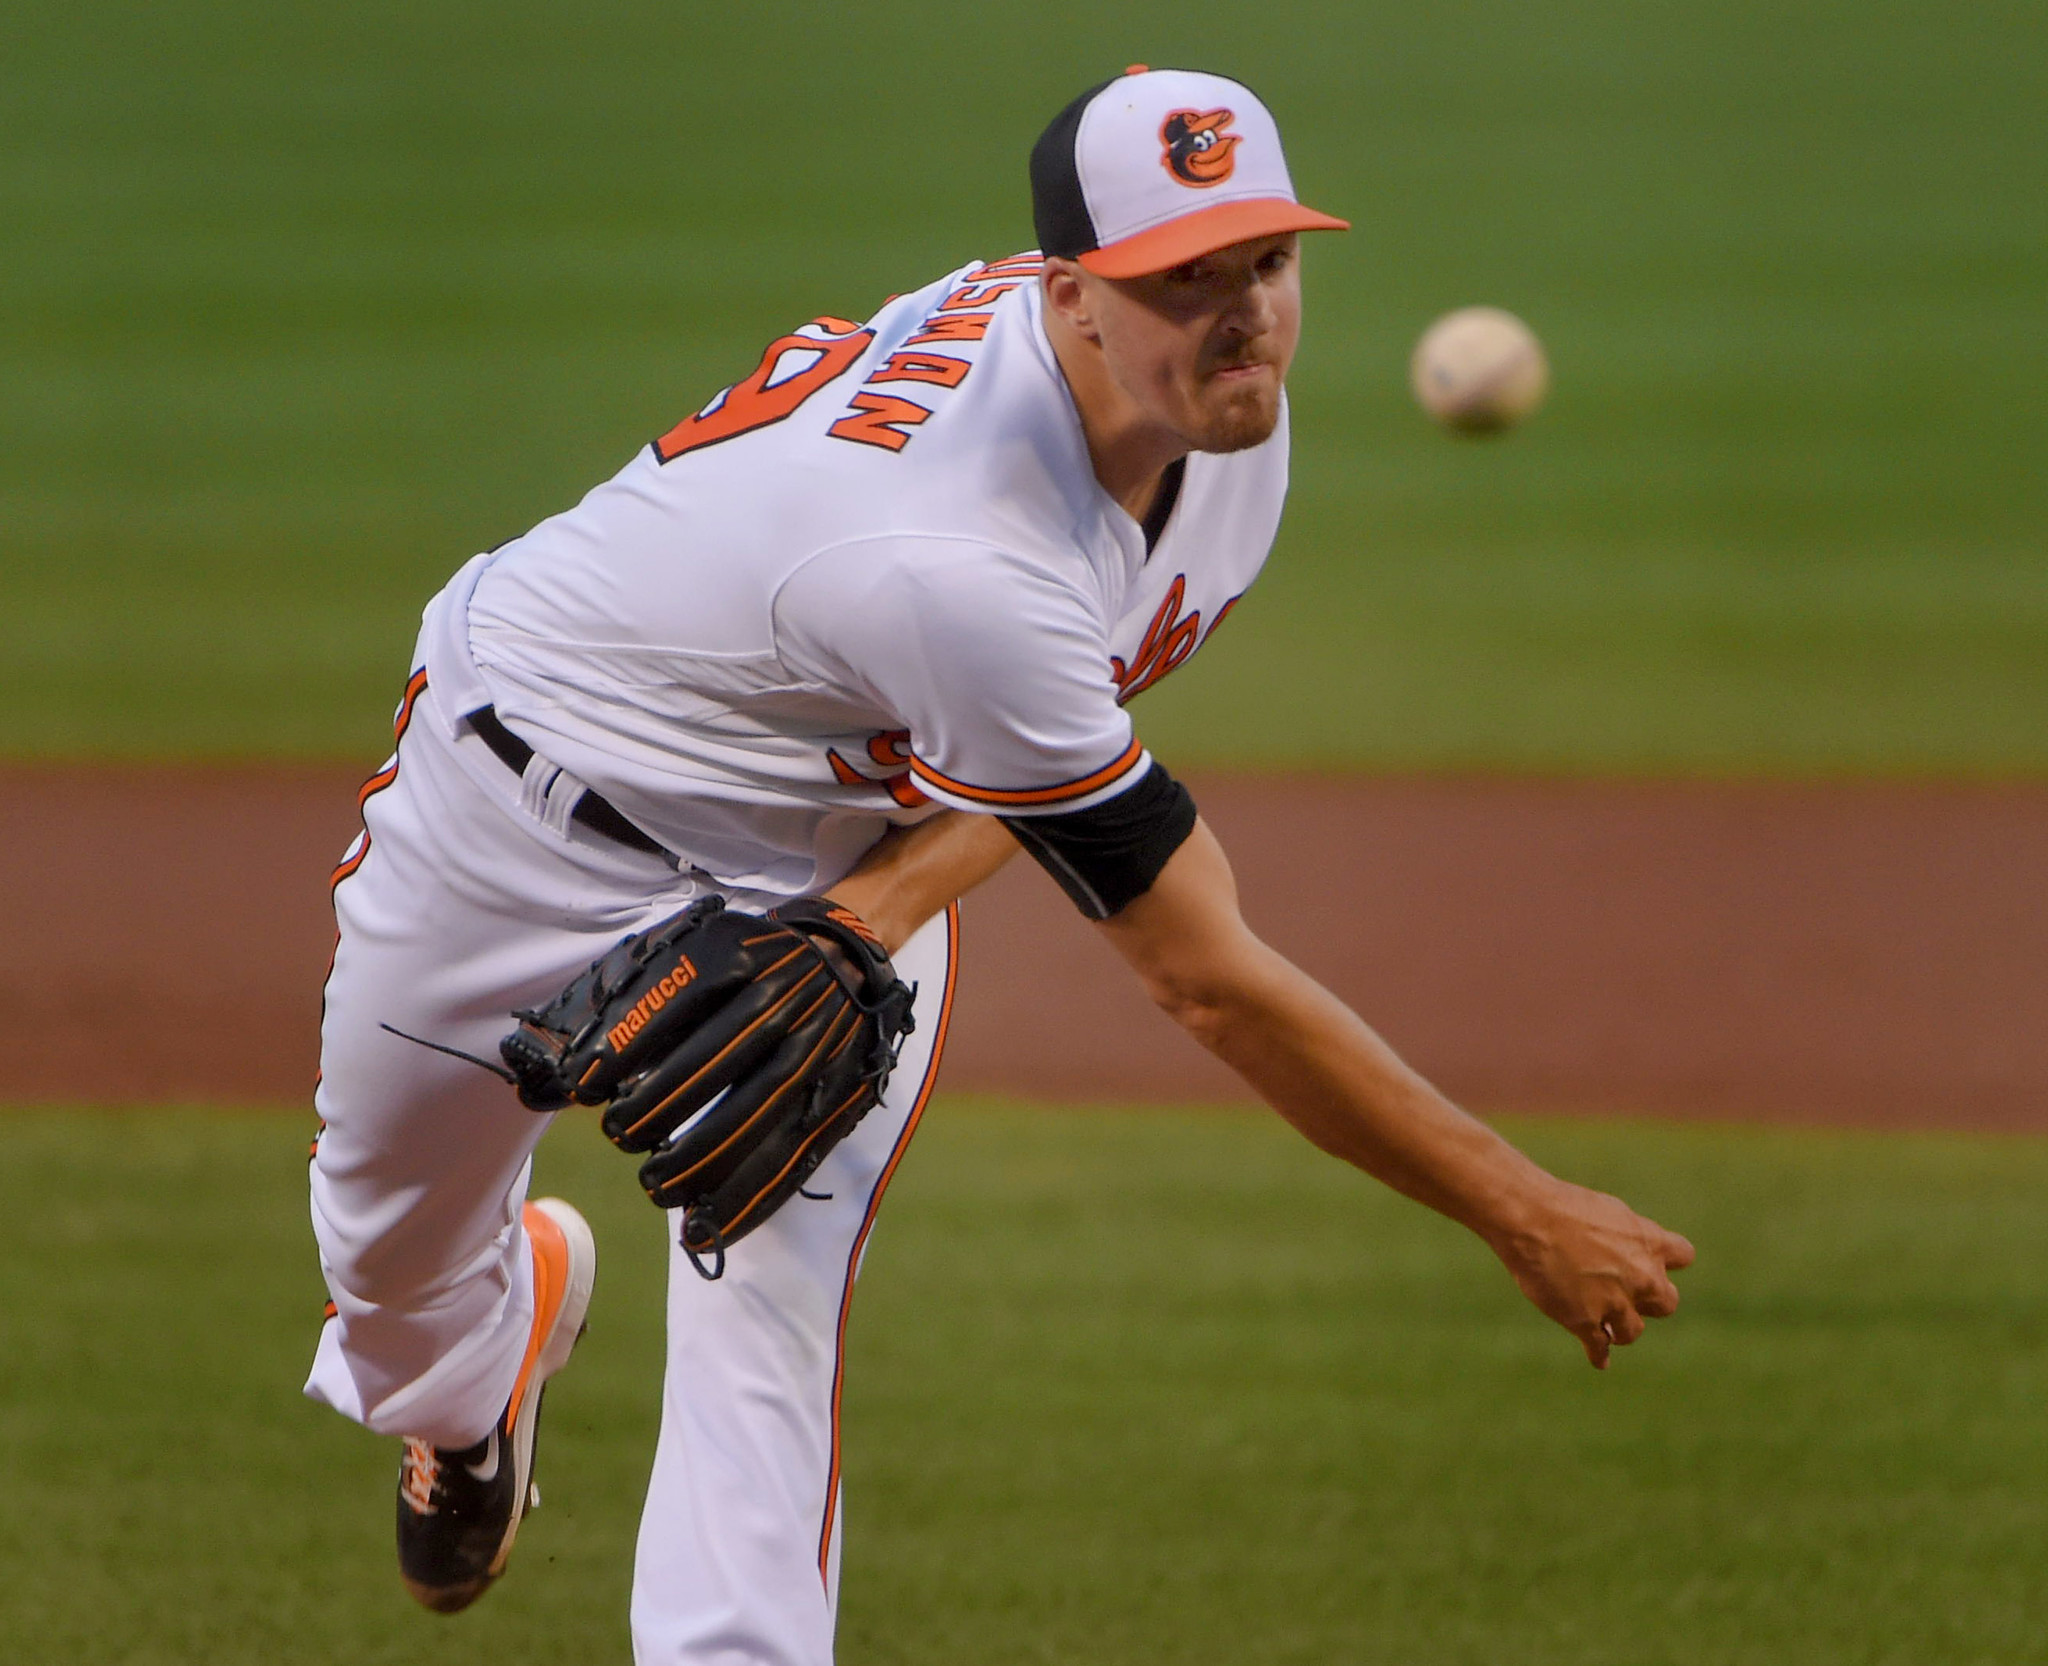 Bal-orioles-kevin-gausman-ready-to-fill-temporary-hole-atop-rotation-without-chris-tillman-20160823